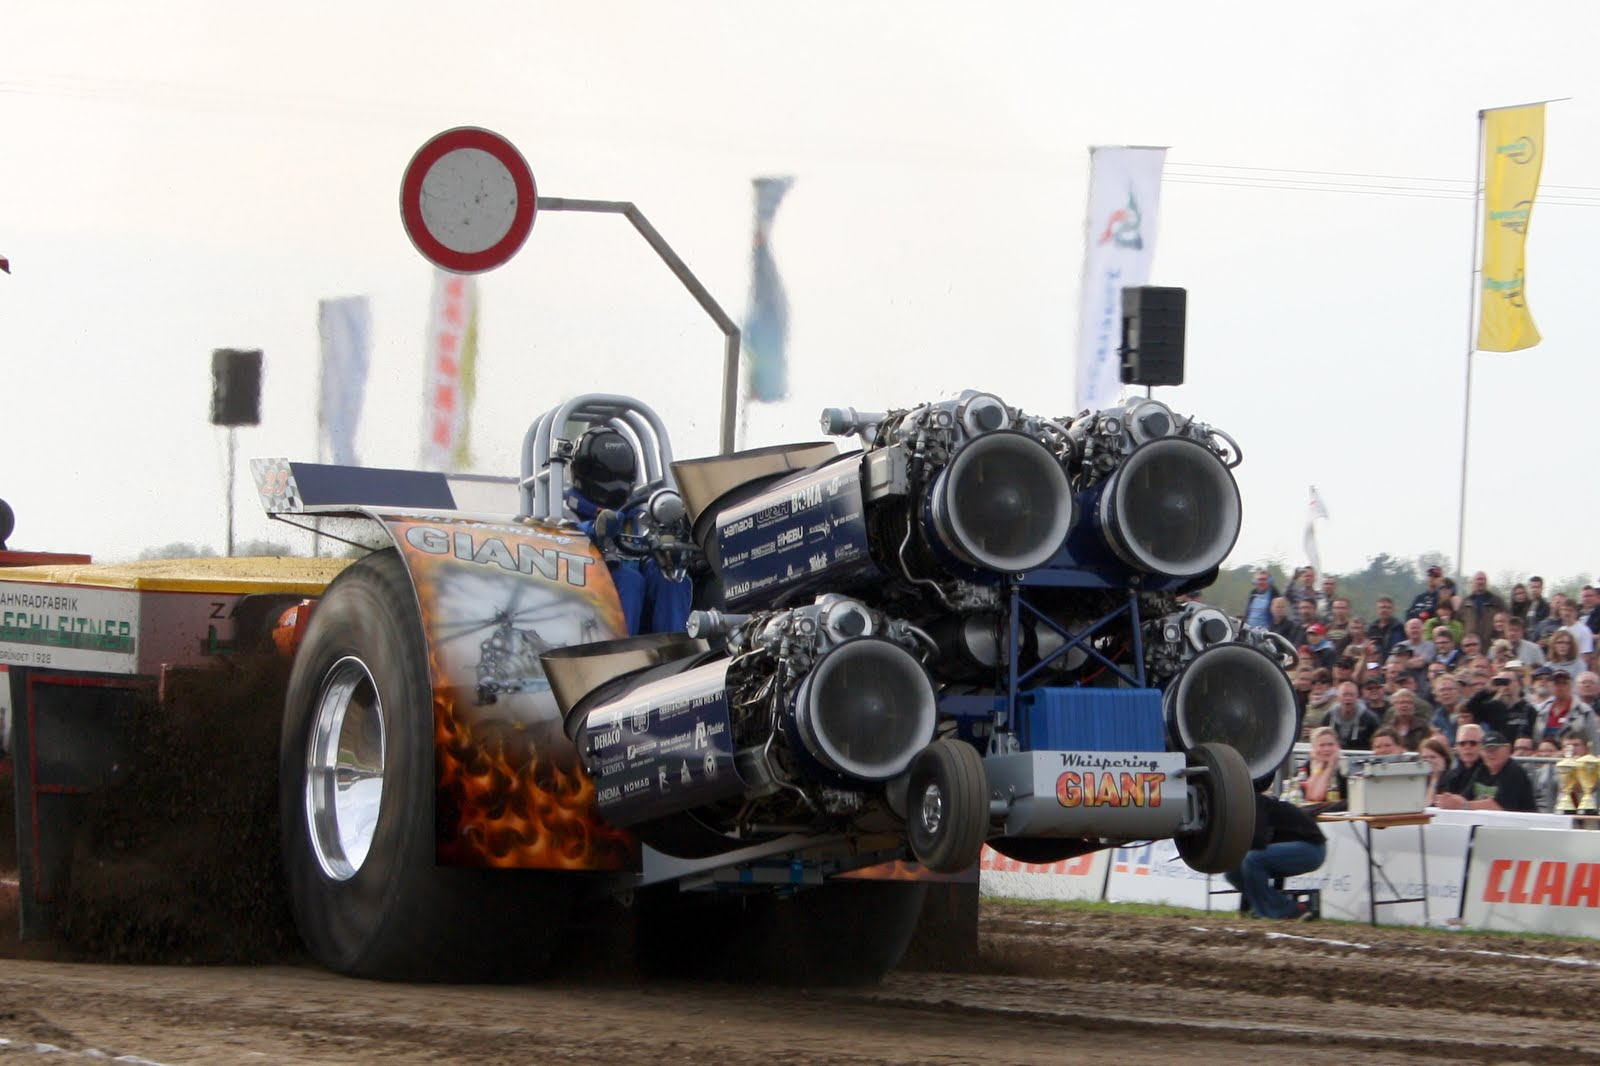 Tractor Pulling Engines : Tractor pulling news pullingworld füchtorf